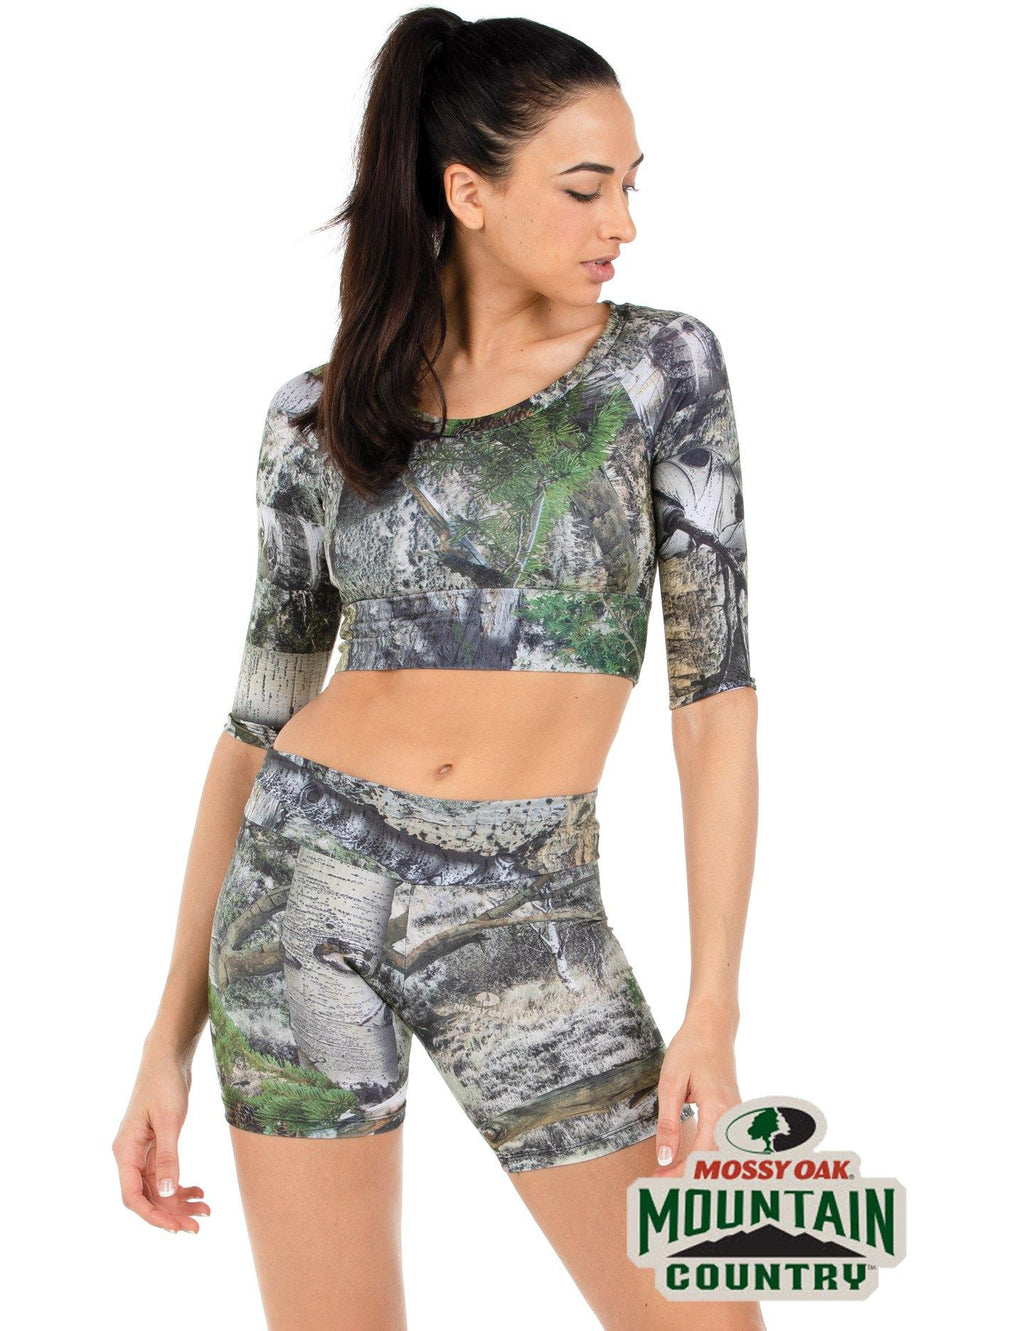 Apsara Cropped Top, Mossy Oak Mountain Country - Apsara Style